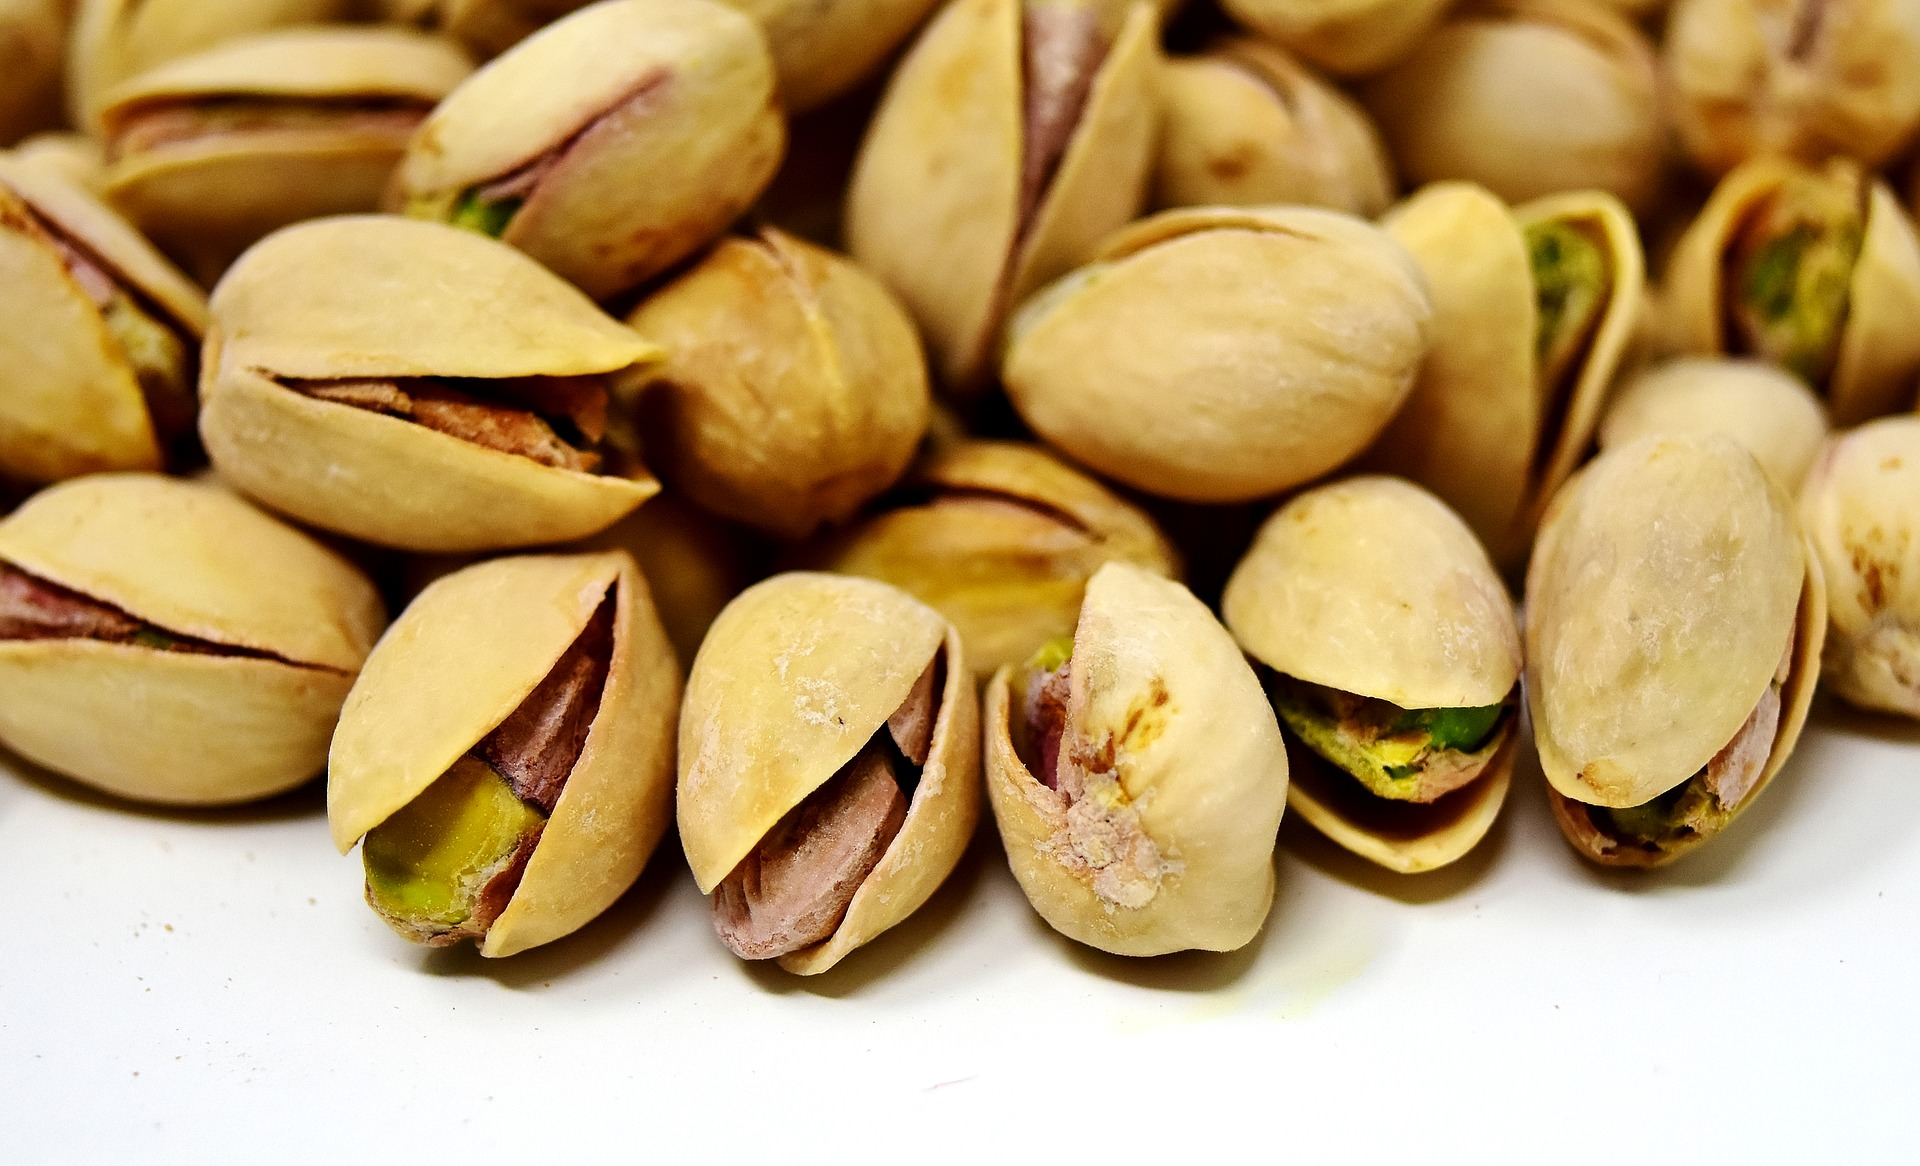 Pistachio benefits and side effects aeg laser distance measurer